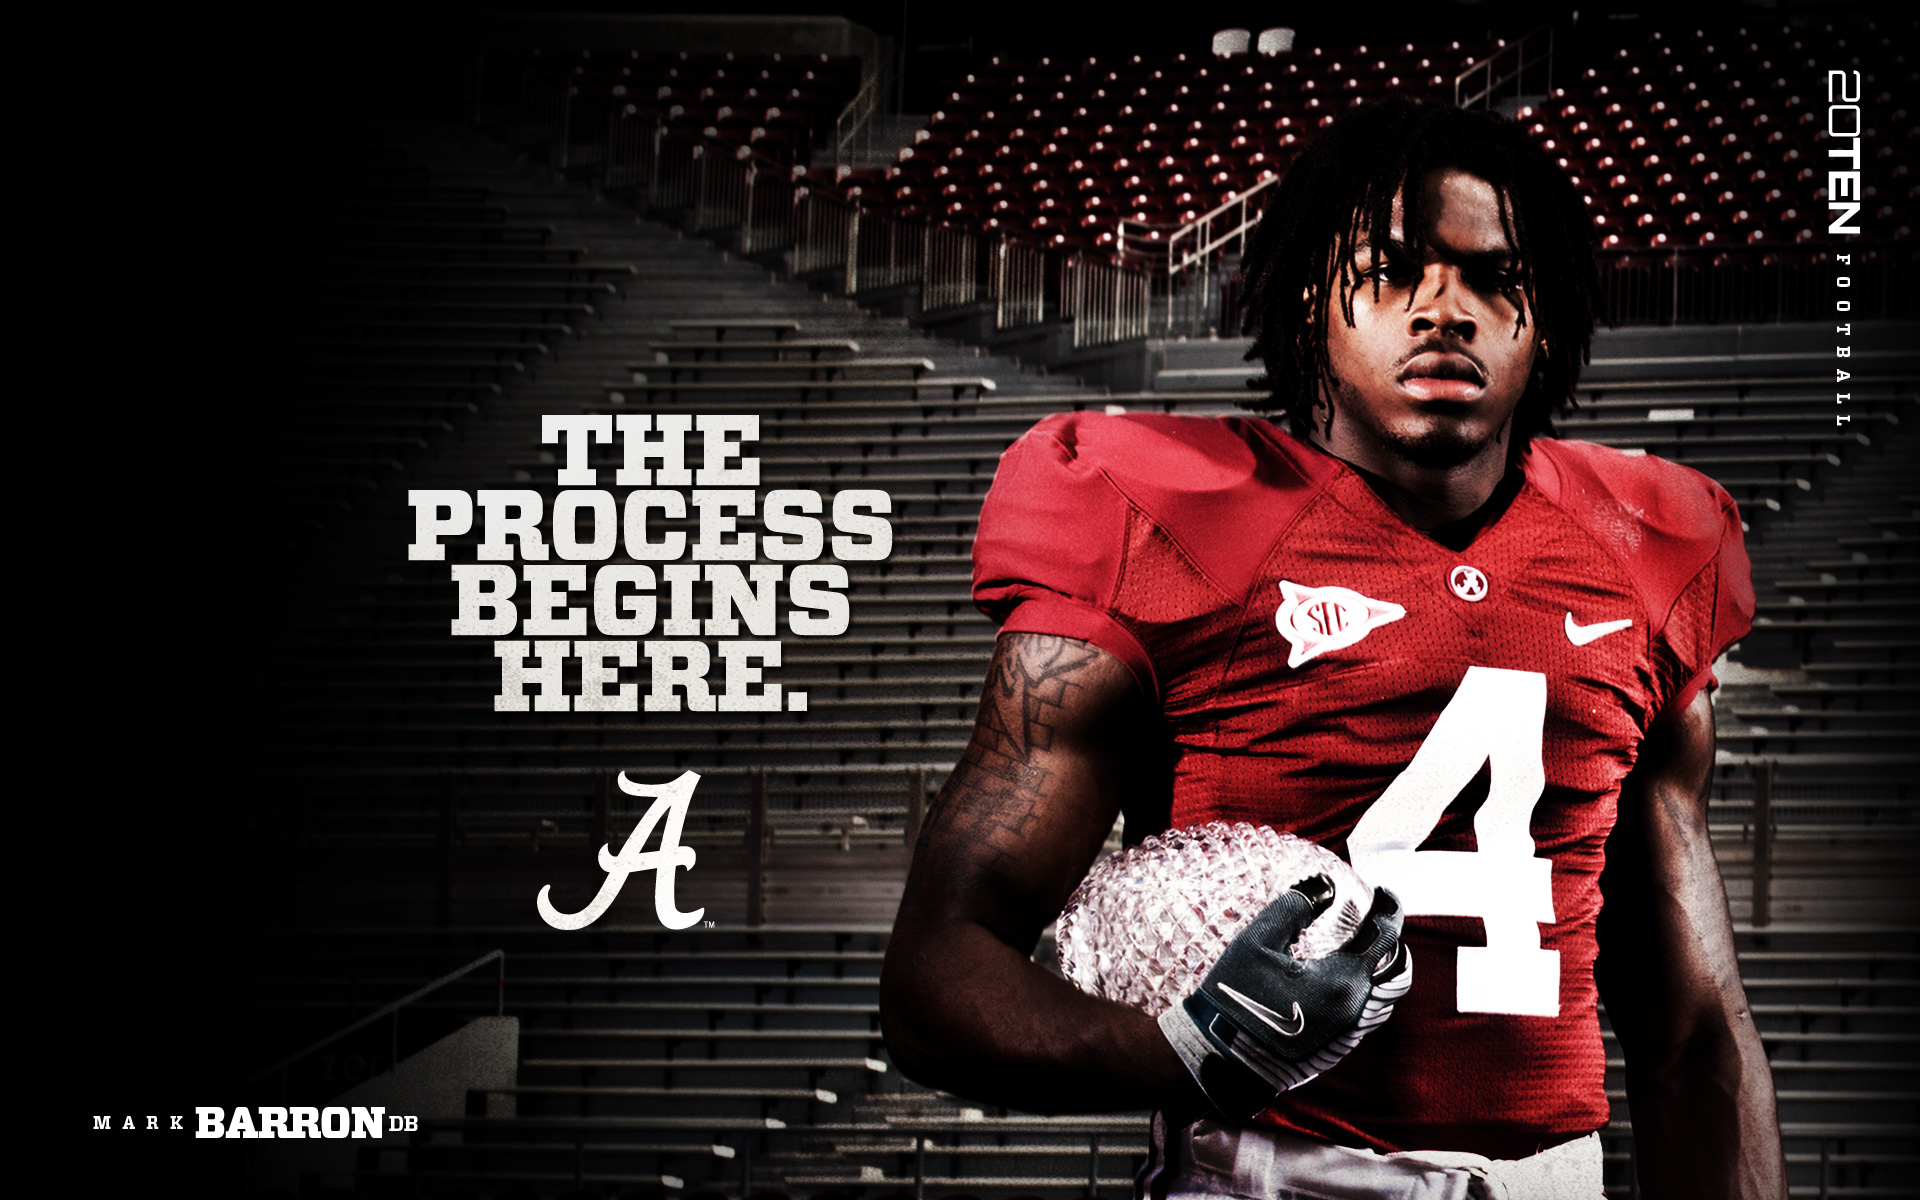 Alabama football screensavers and wallpaper wallpapersafari what is wallpaper wallpaper is the image on your desktop behind your sciox Image collections